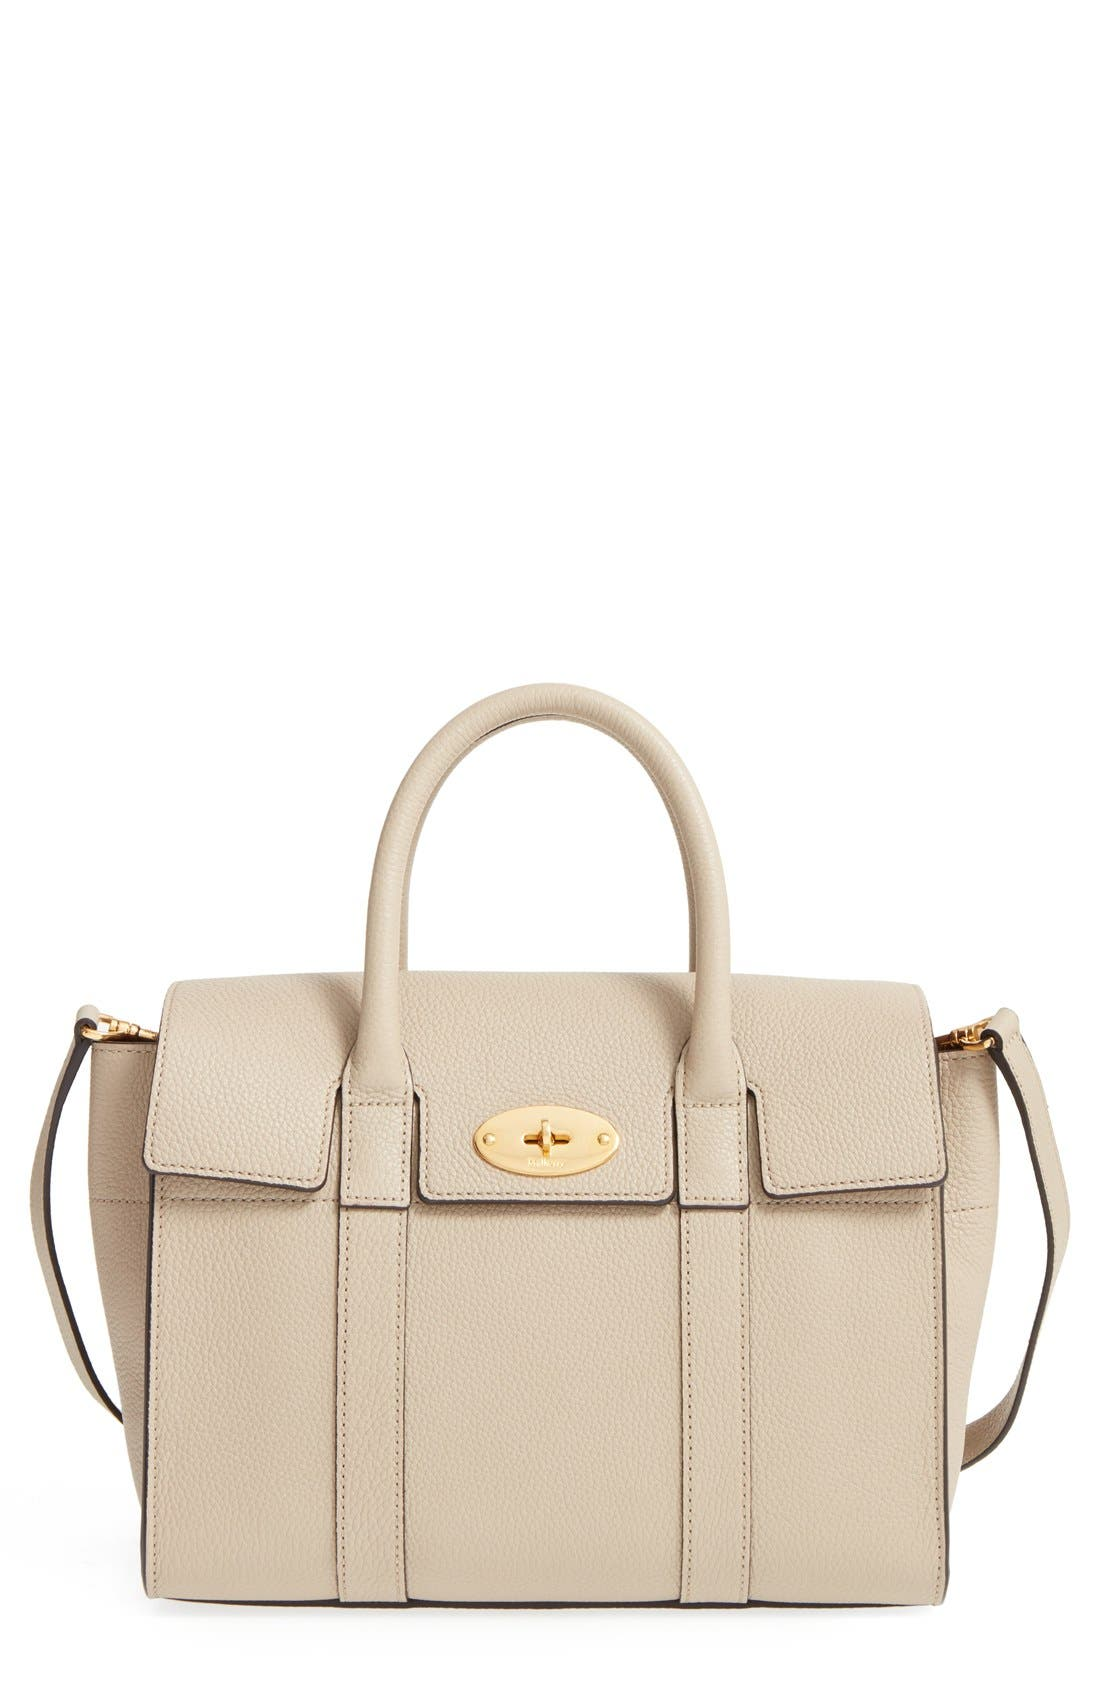 Main Image - Mulberry 'Small Bayswater' Leather Satchel